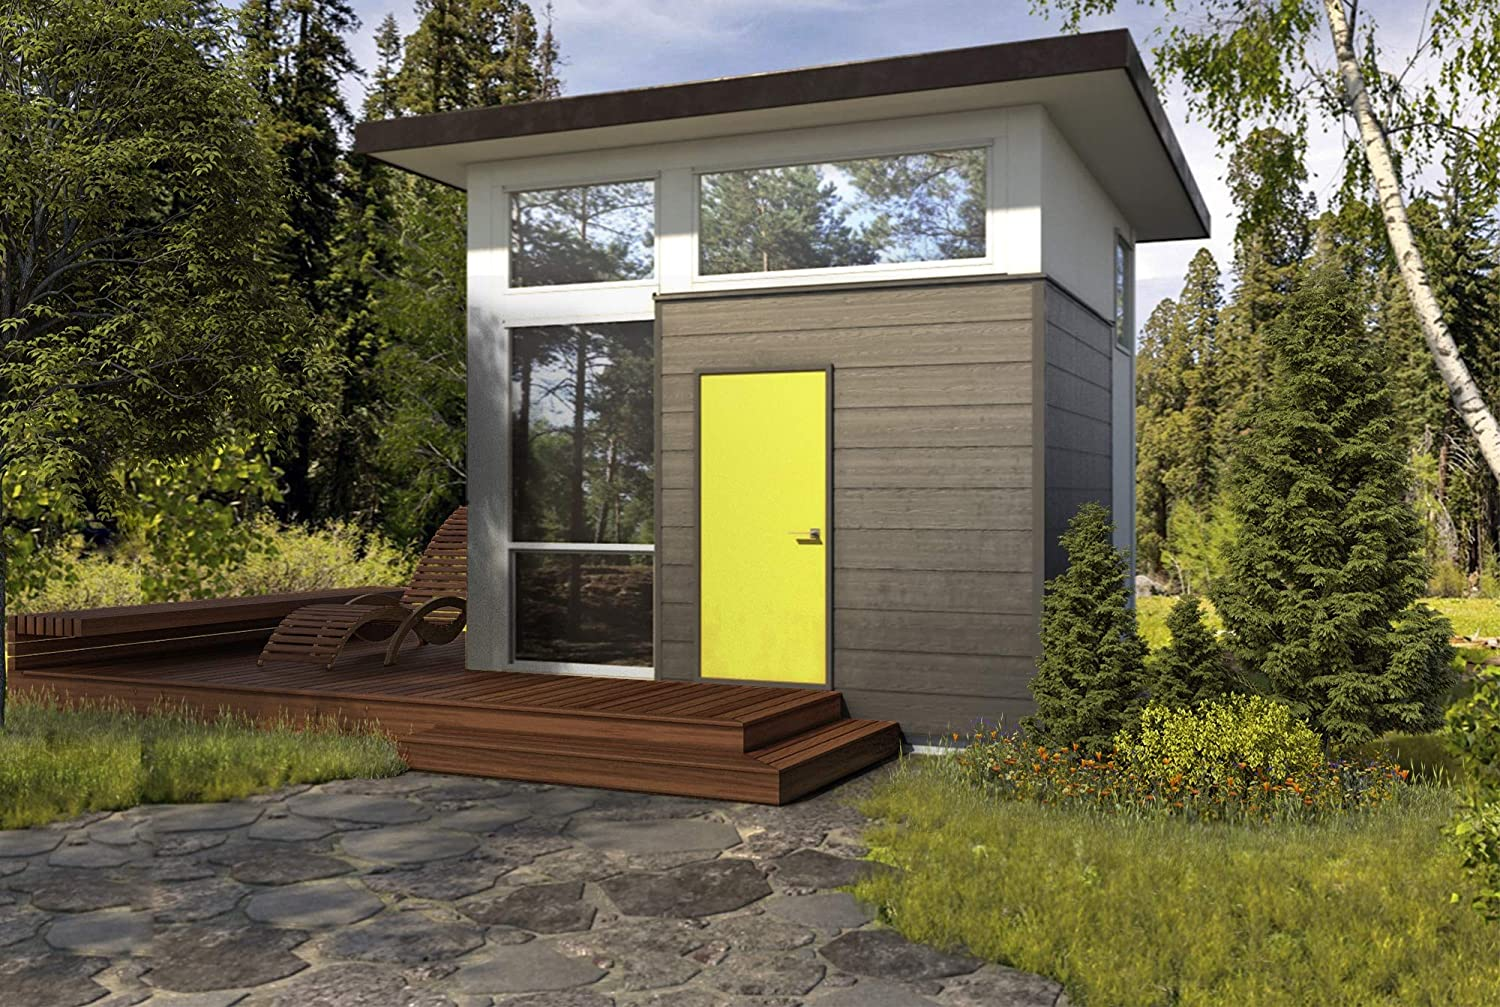 NOMAD Micro Home - Modular Tiny Home with Off-Grid Technology (nomadmicrohomes.com)